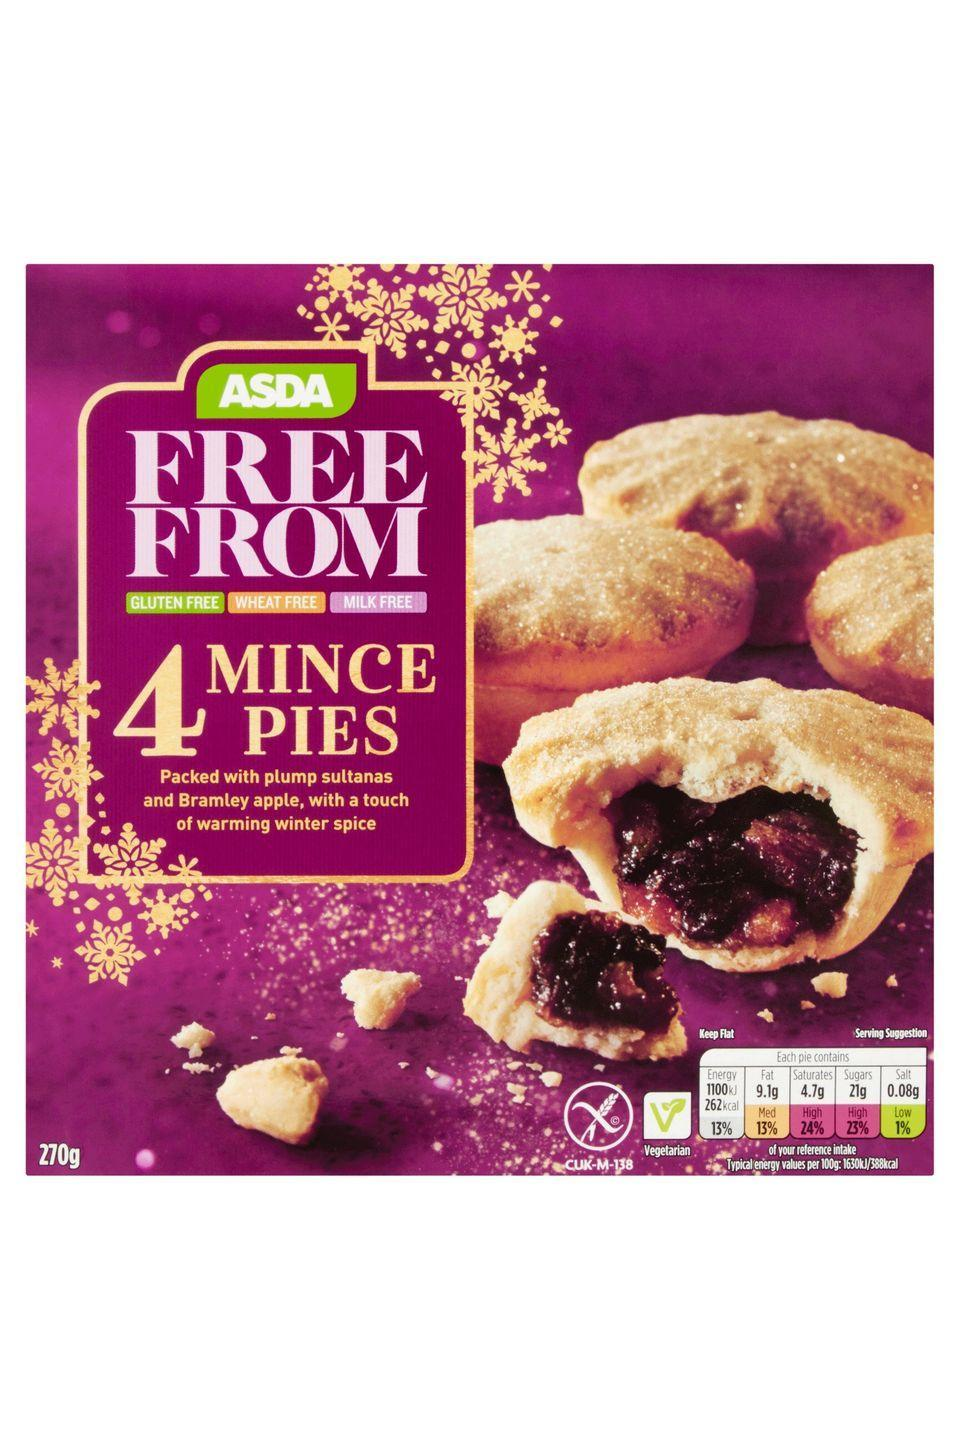 "<p><strong>Overall score: 63/100</strong></p><p>Although these gluten-free mince pies have an earthy aroma, the orange and lemon peel give a pleasant, zesty hint with a fruity balance also coming through. While the pastry was found to be grainy and cloying, the moist filling with sharp citrus flavours and a good level of sweetness saves this mince pie. </p><p><a class=""link rapid-noclick-resp"" href=""https://groceries.asda.com/product/swiss-roll-sponge-cakes/asda-free-from-4-mince-pies/1000008145057"" rel=""nofollow noopener"" target=""_blank"" data-ylk=""slk:BUY NOW"">BUY NOW</a> <strong>Asda, £1.55 for 4 (serves 4)</strong></p>"